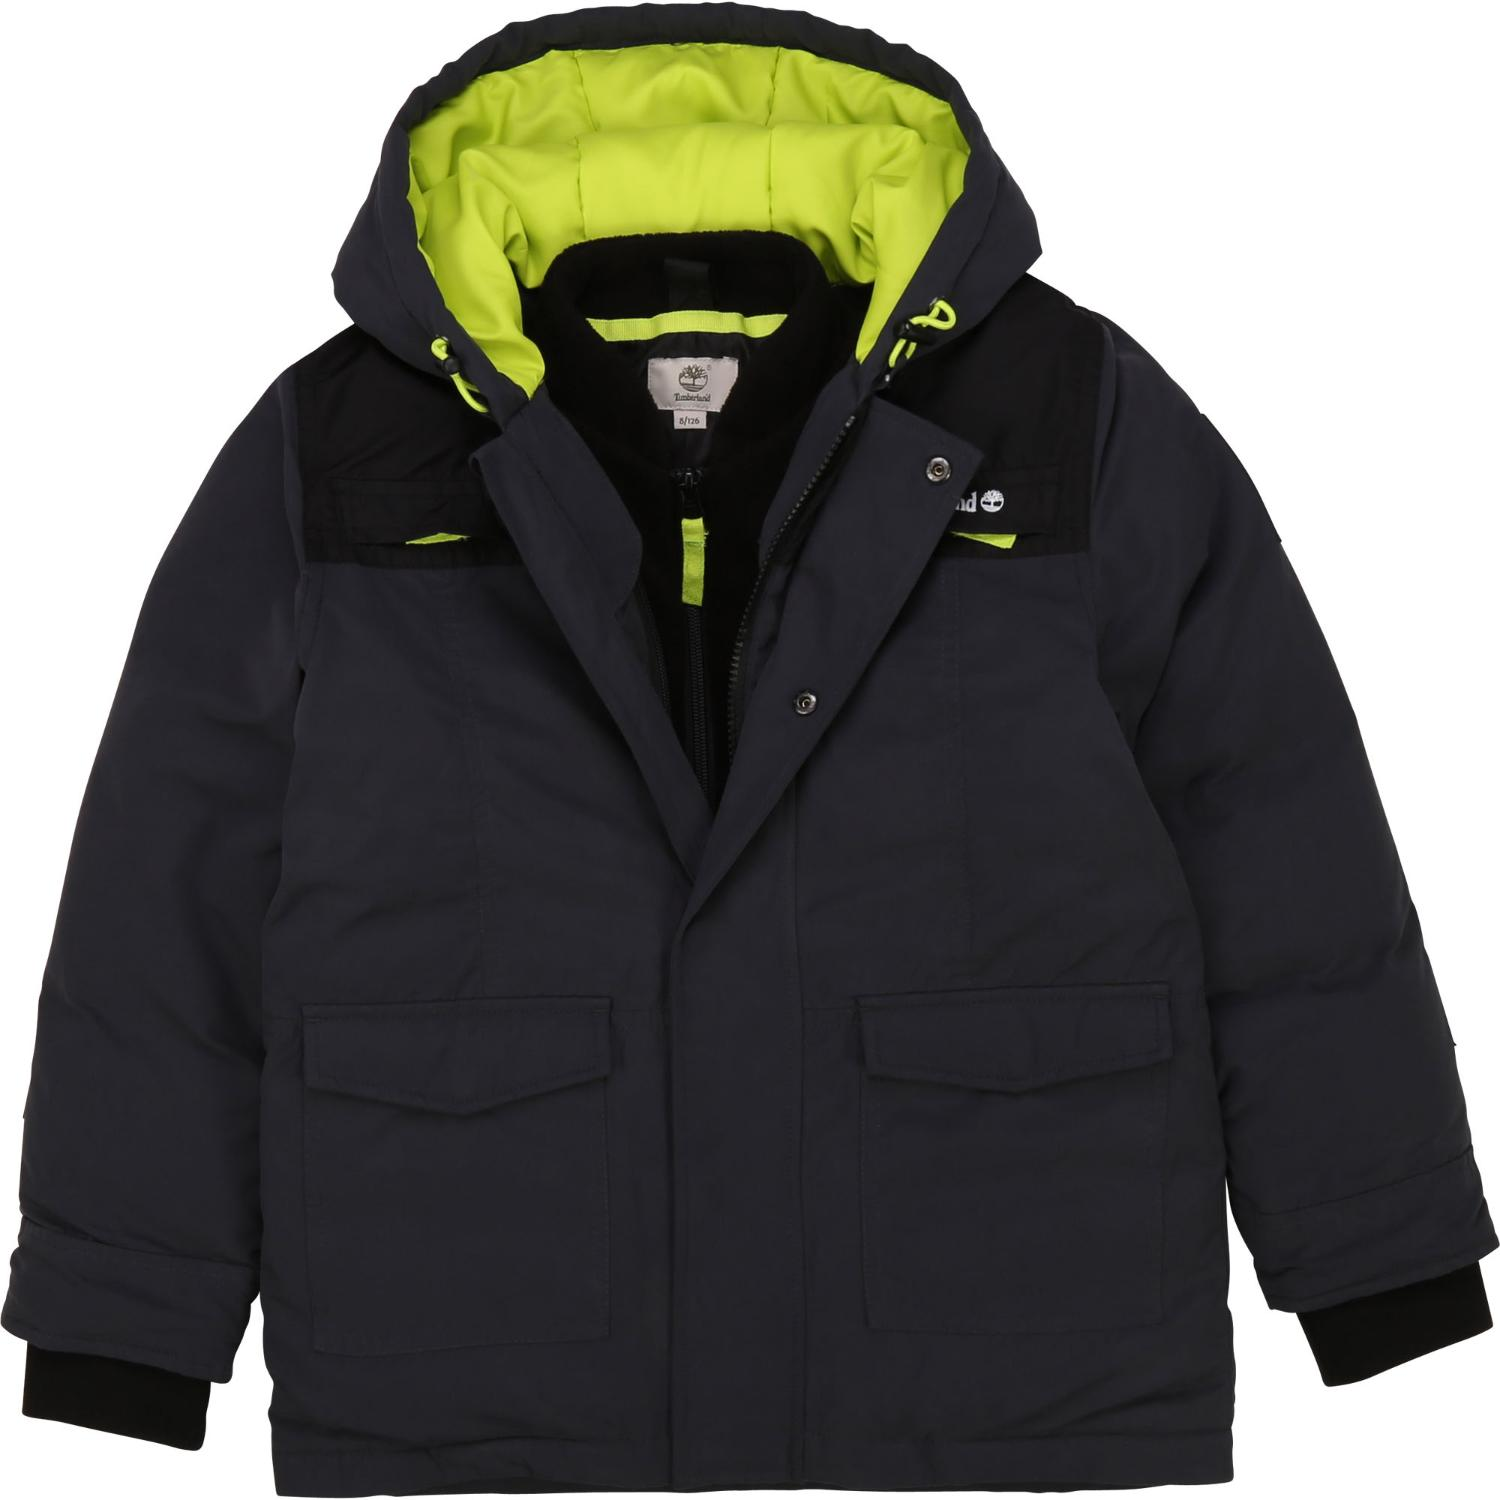 TIMBERLAND 2 IN 1 PARKA & FLEECE GILET T26526 Z40